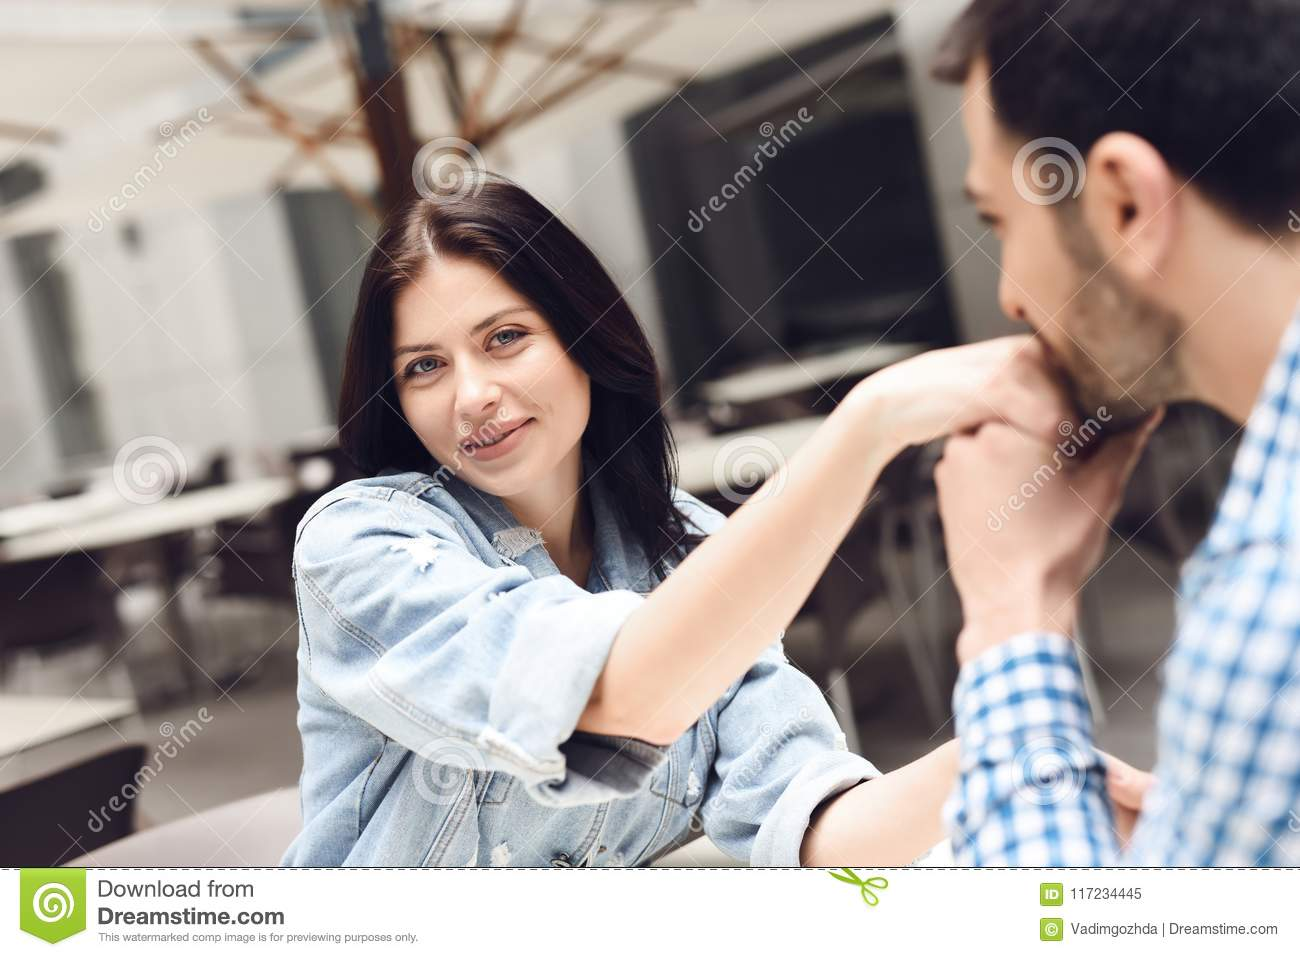 guy kisses the hand